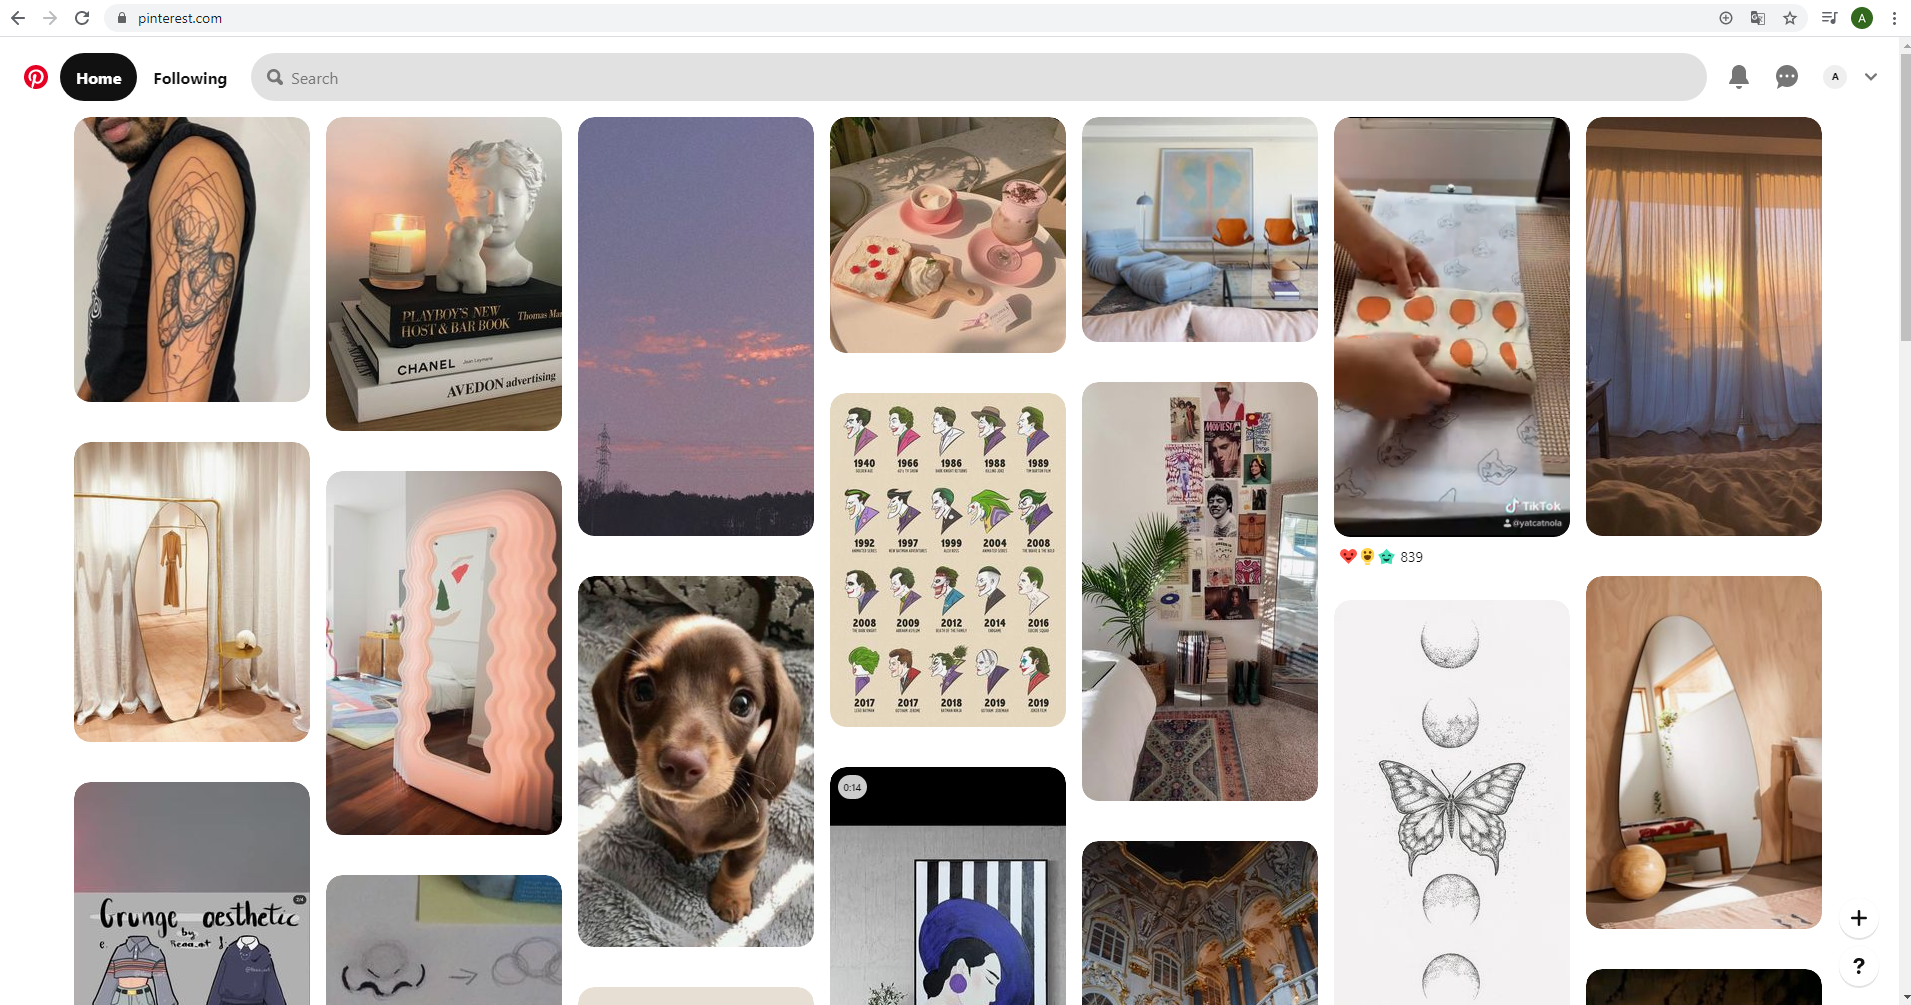 What a Pinterest's website newsfeed looks like